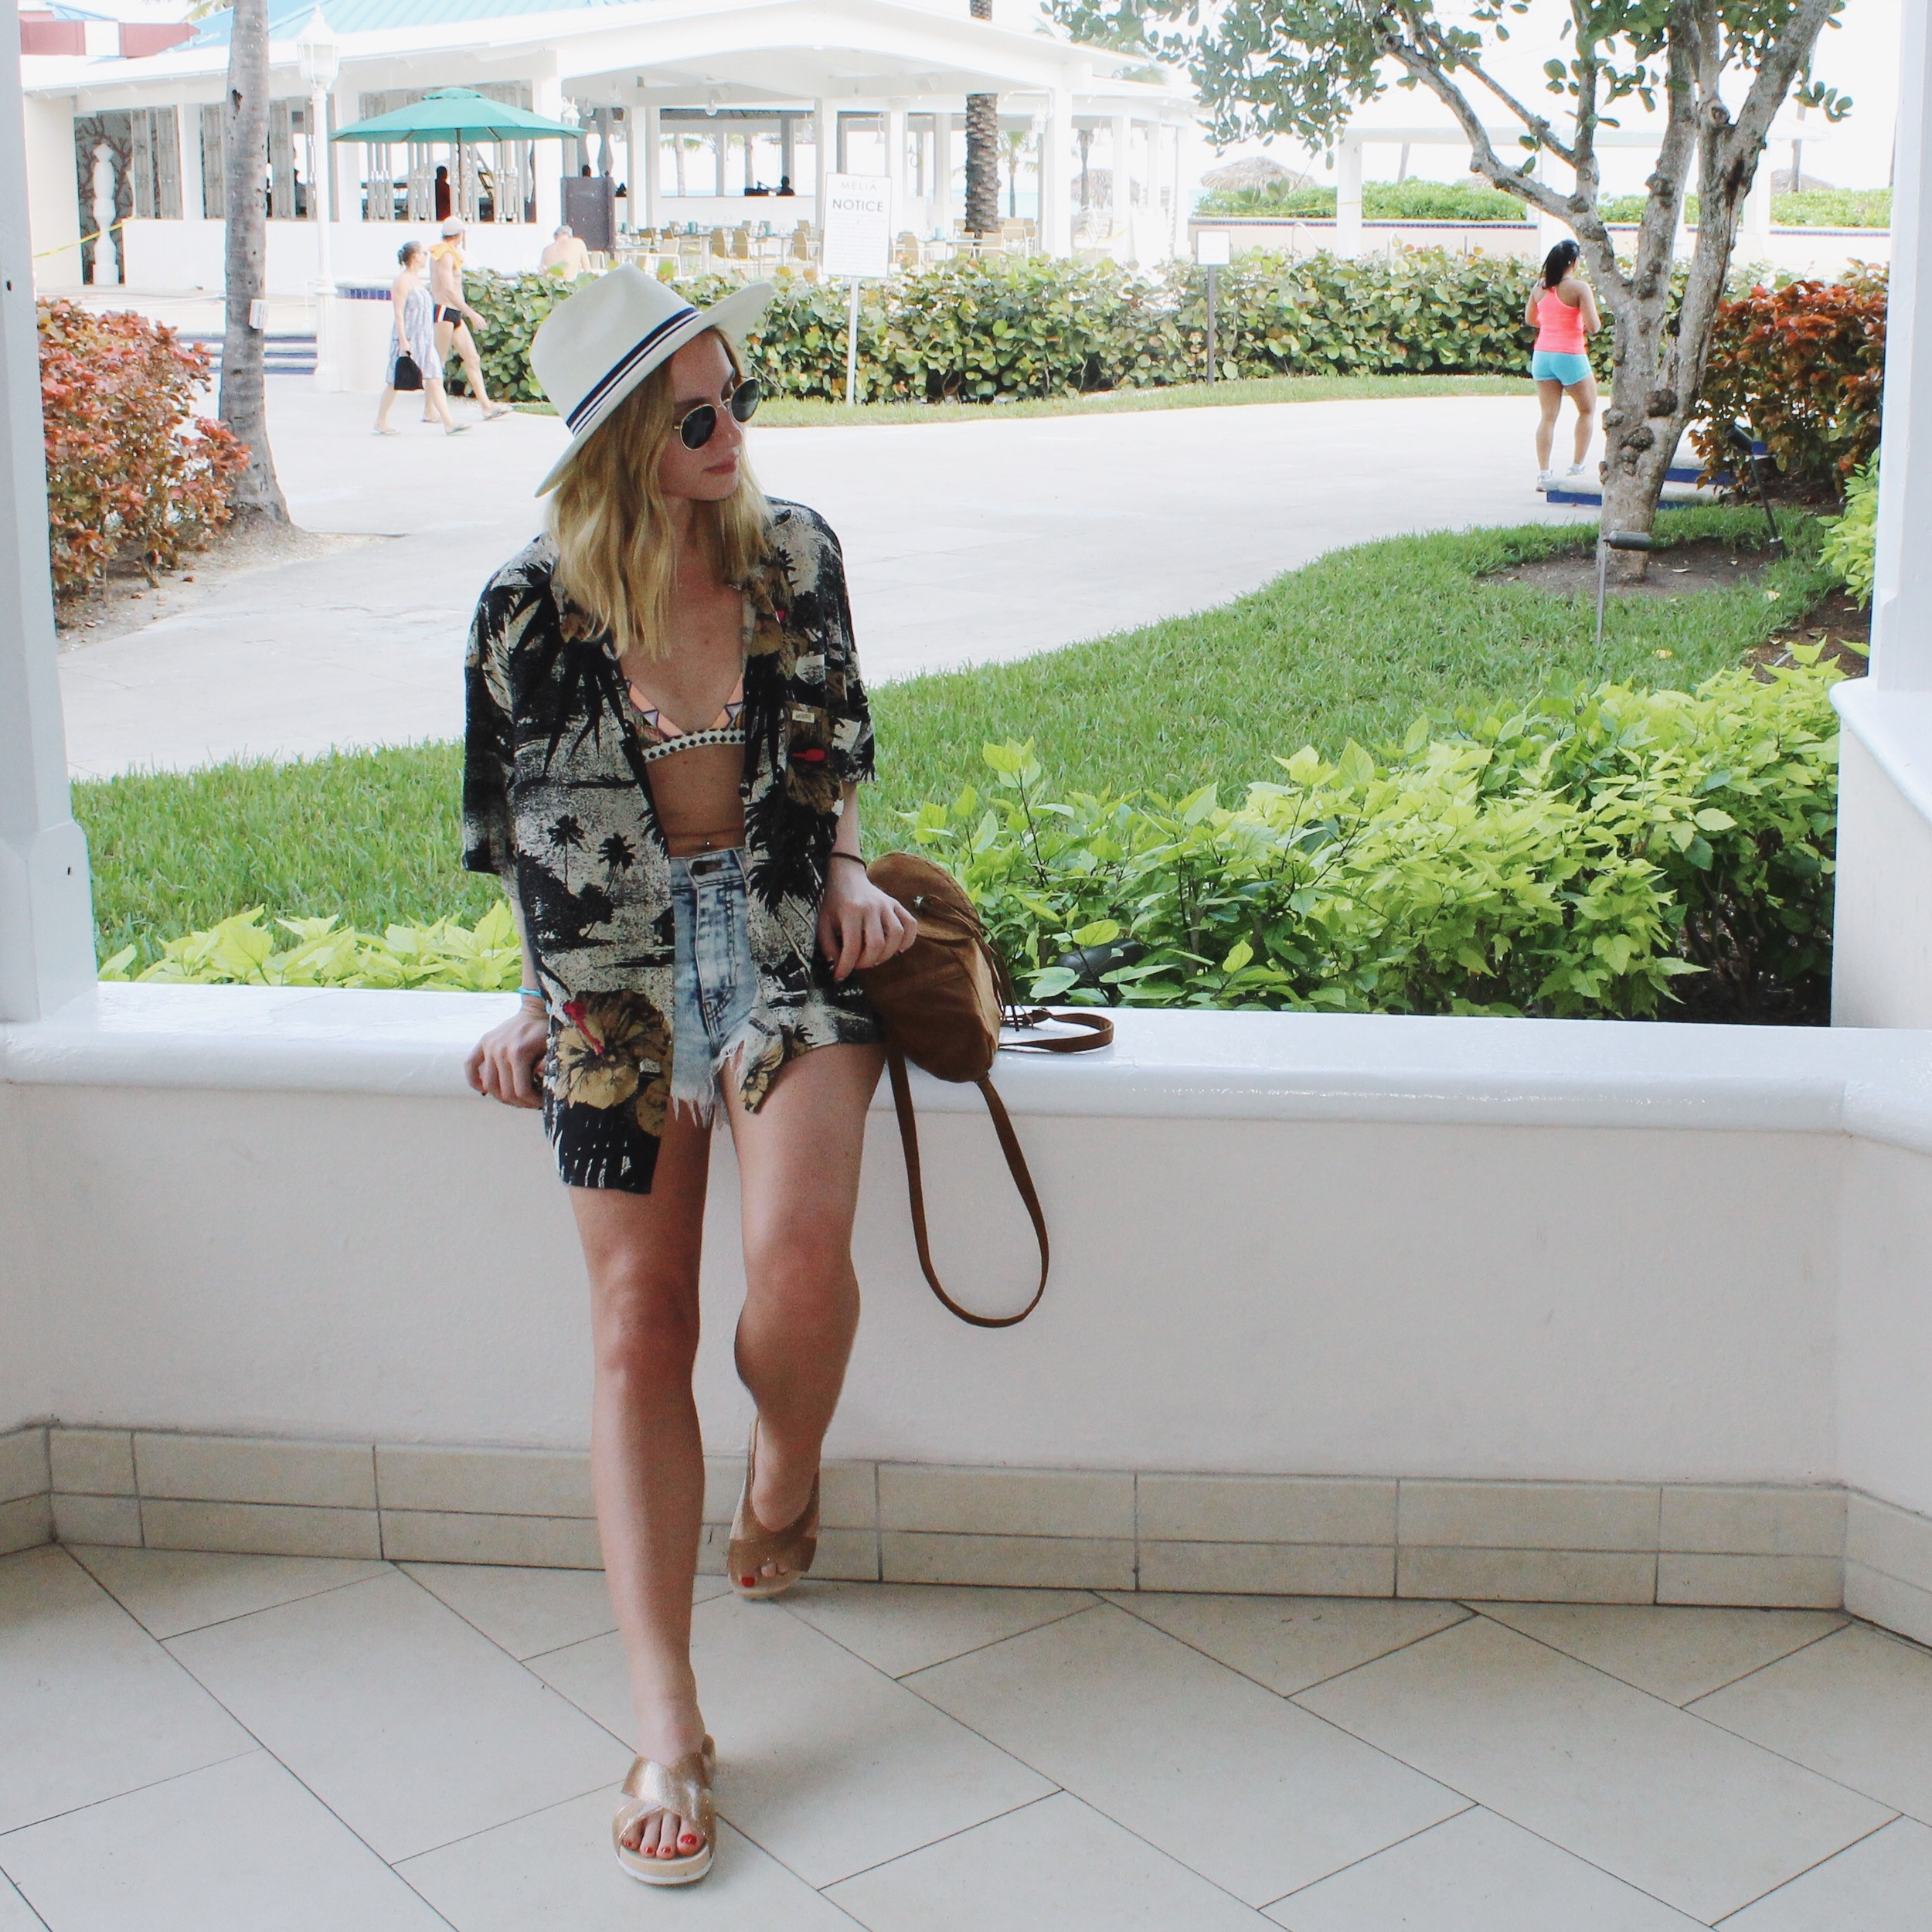 Dressed In: Hawaiian Shirt: 90's Vintage Guess by Marciano from  Thriftwares in Brooklyn (similar  here , here , & here ) | Cut Offs: here & here | Sandals: Aldo (sold out - similar  here & here ) | Backpack: Forever 21 (sold out - similar  here & here ) |